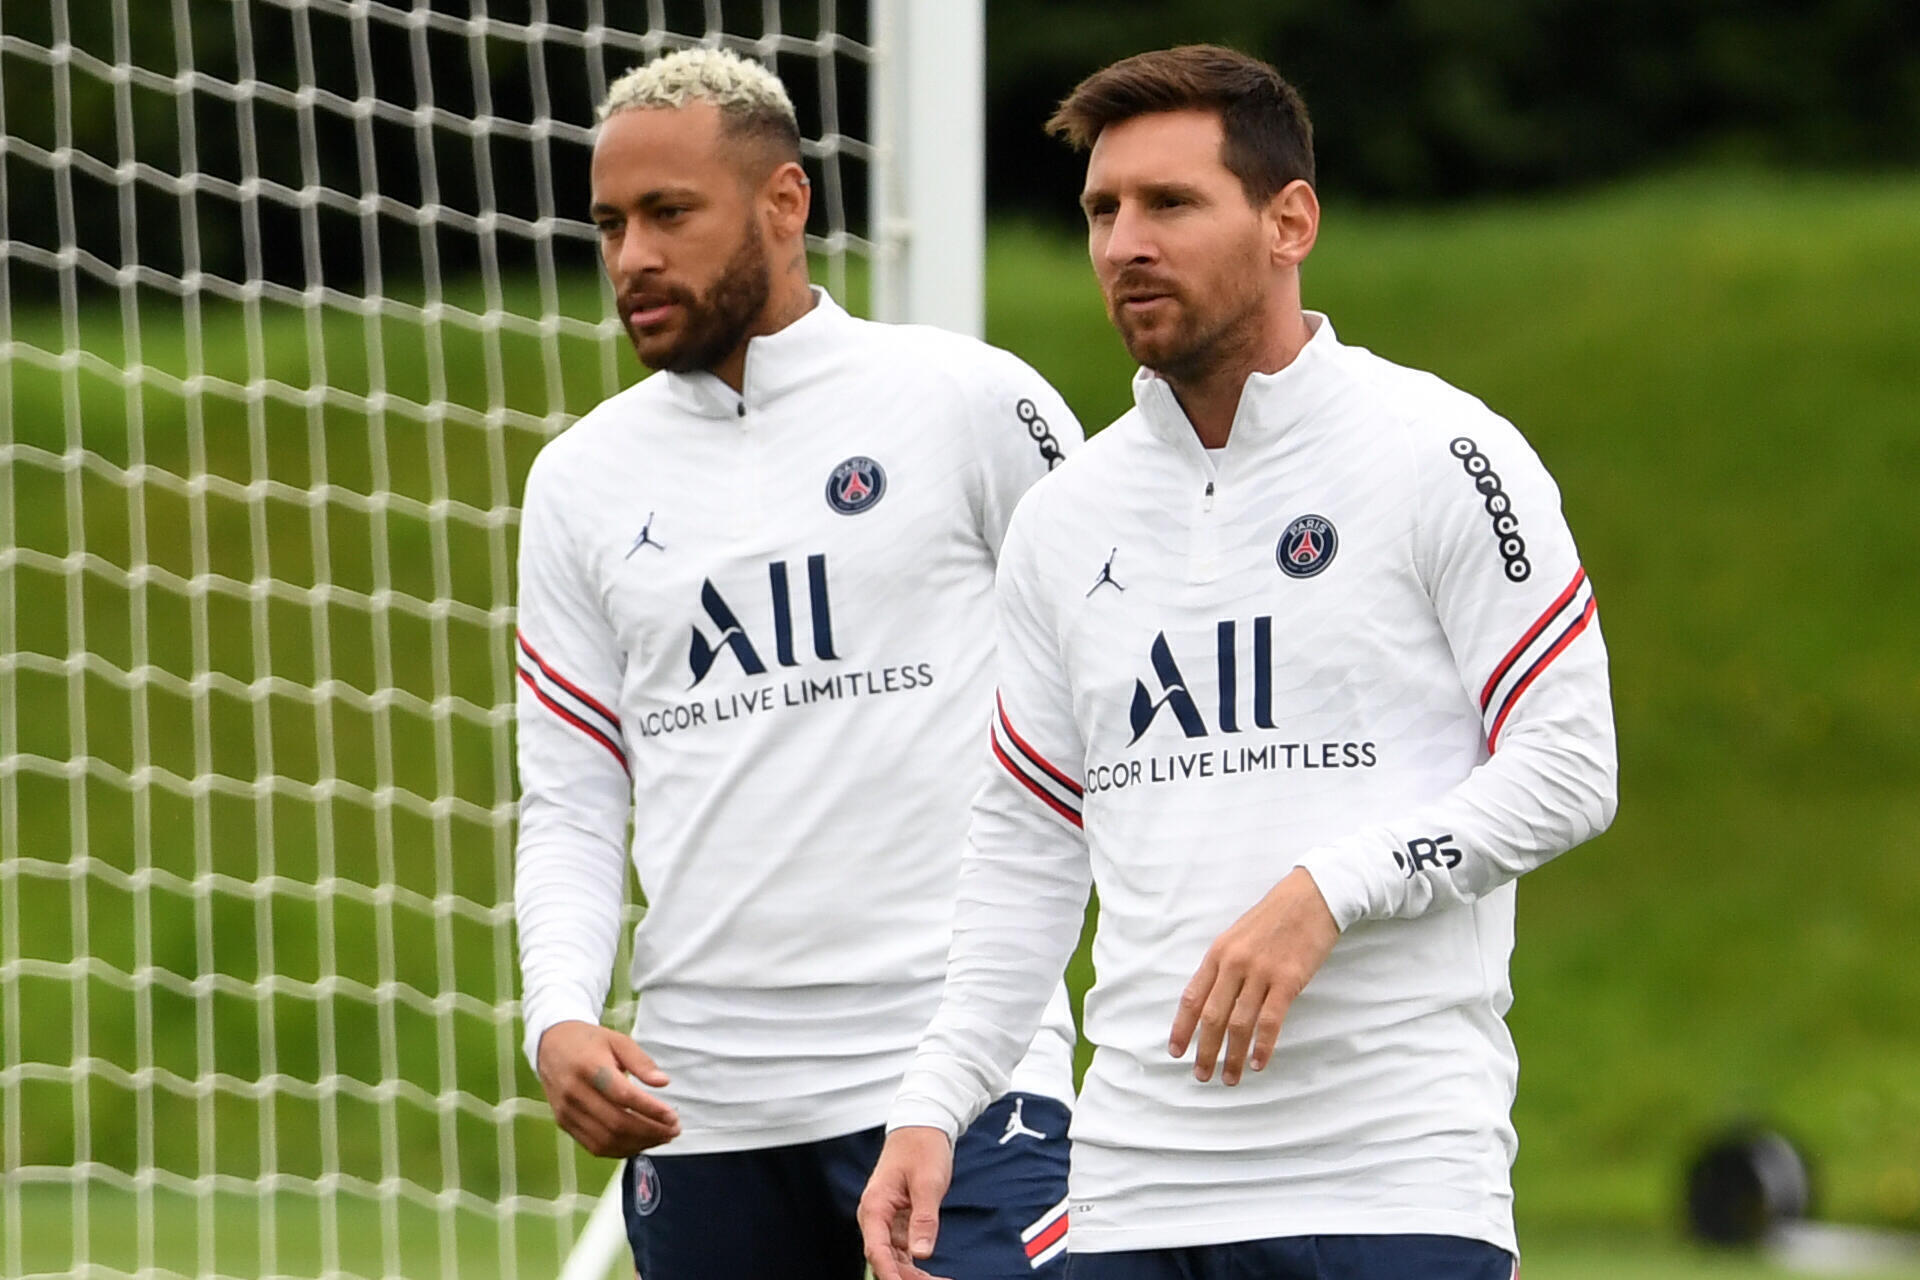 Lionel Messi and Neymar will play against eachother in September in a World Cup qualifier